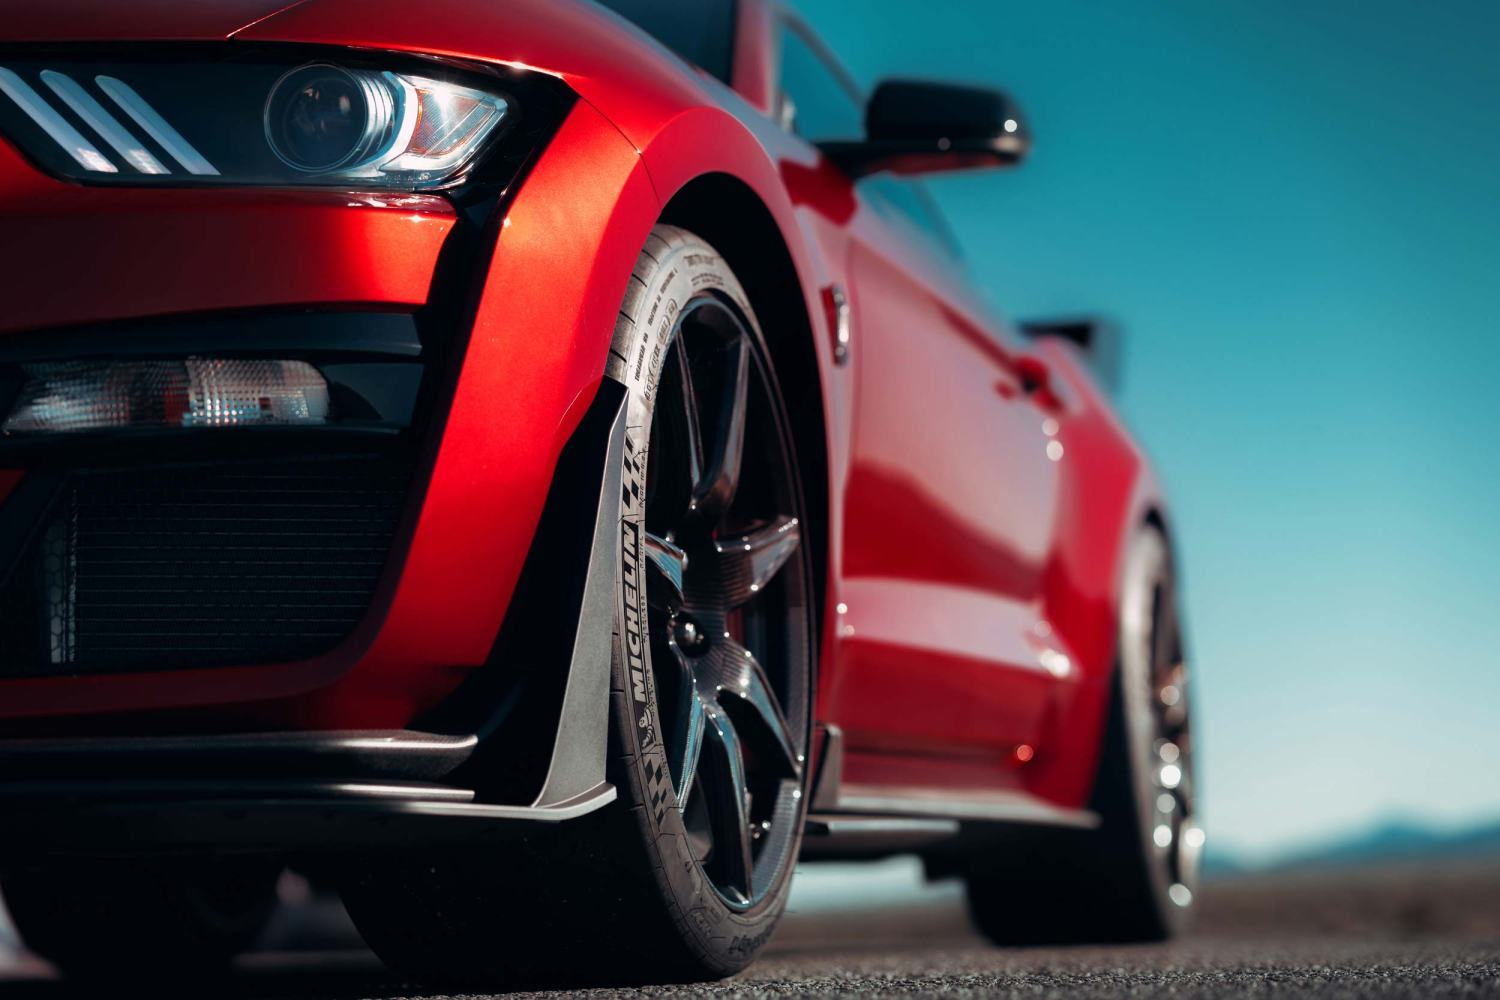 2020 Mustang Shelby GT500 tires